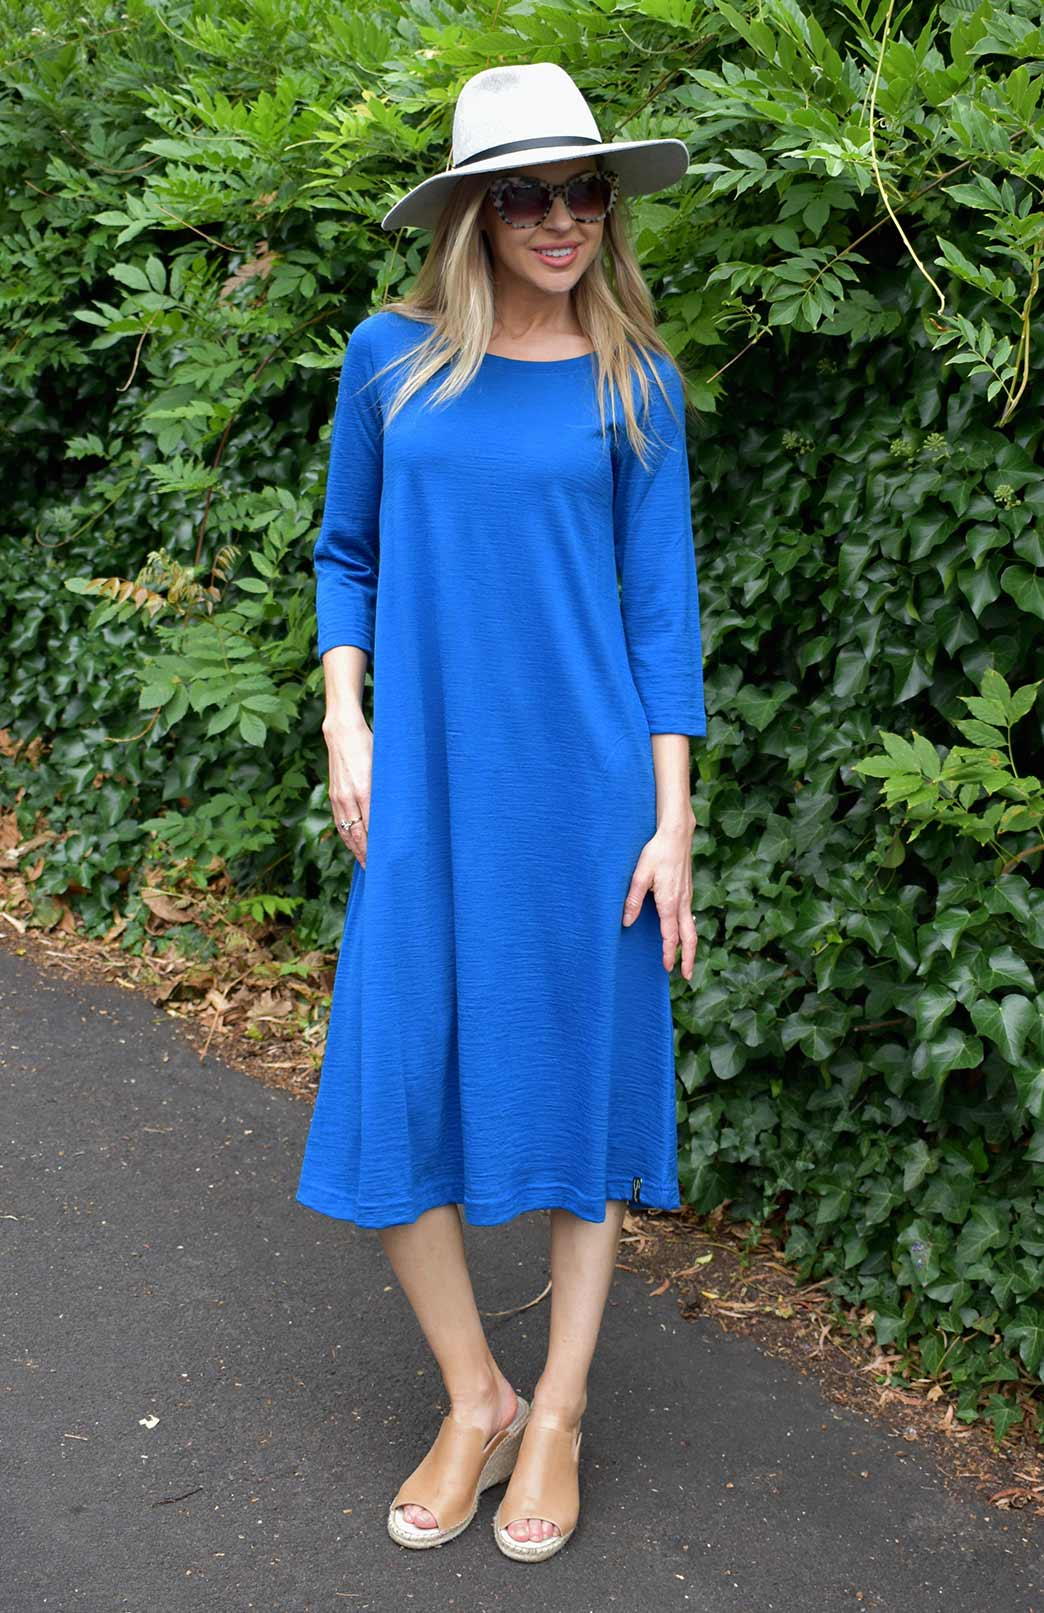 Kelly Dress - Women's Royal Blue Pure Merino Wool A-Line Dress with 3/4 Sleeves and Side Pockets - Smitten Merino Tasmania Australia